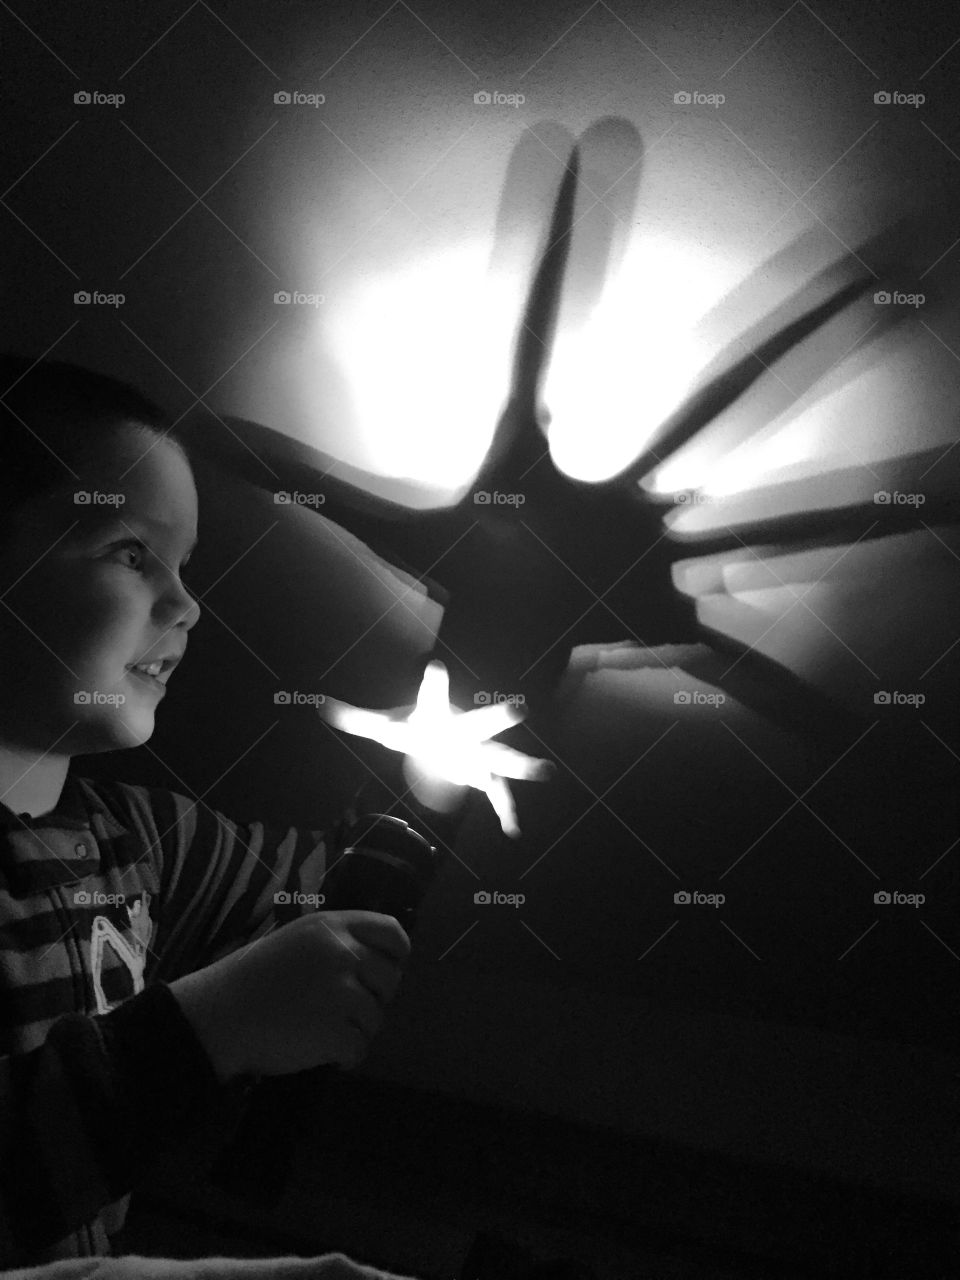 Little boy holding torch and gesturing